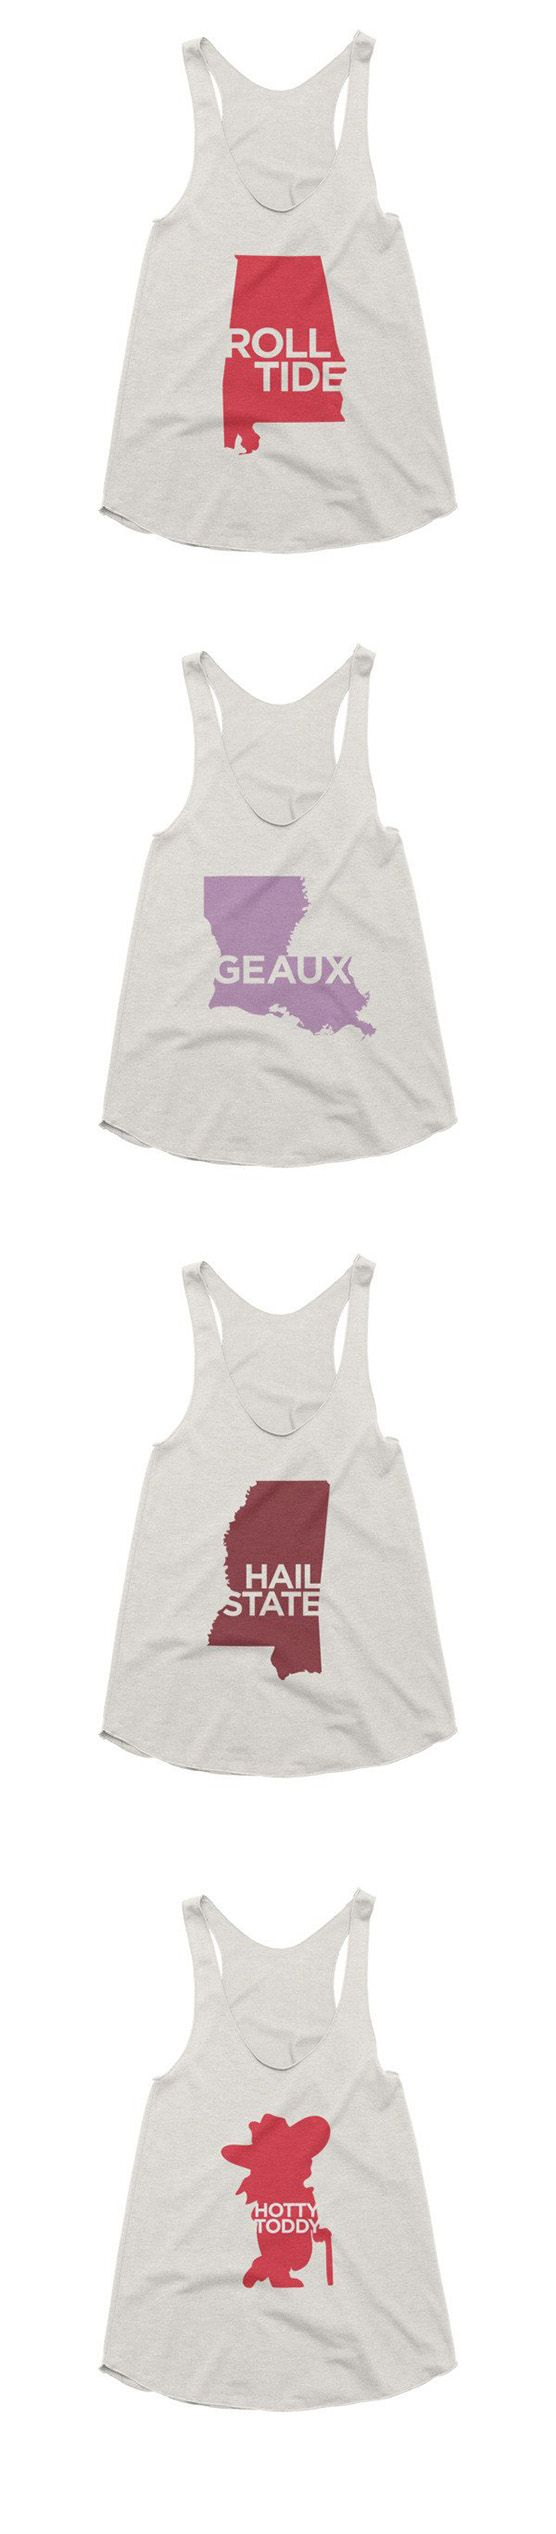 LSU, Alabama, Ole Miss, Mississippi State Graph Tank Tops #82and1